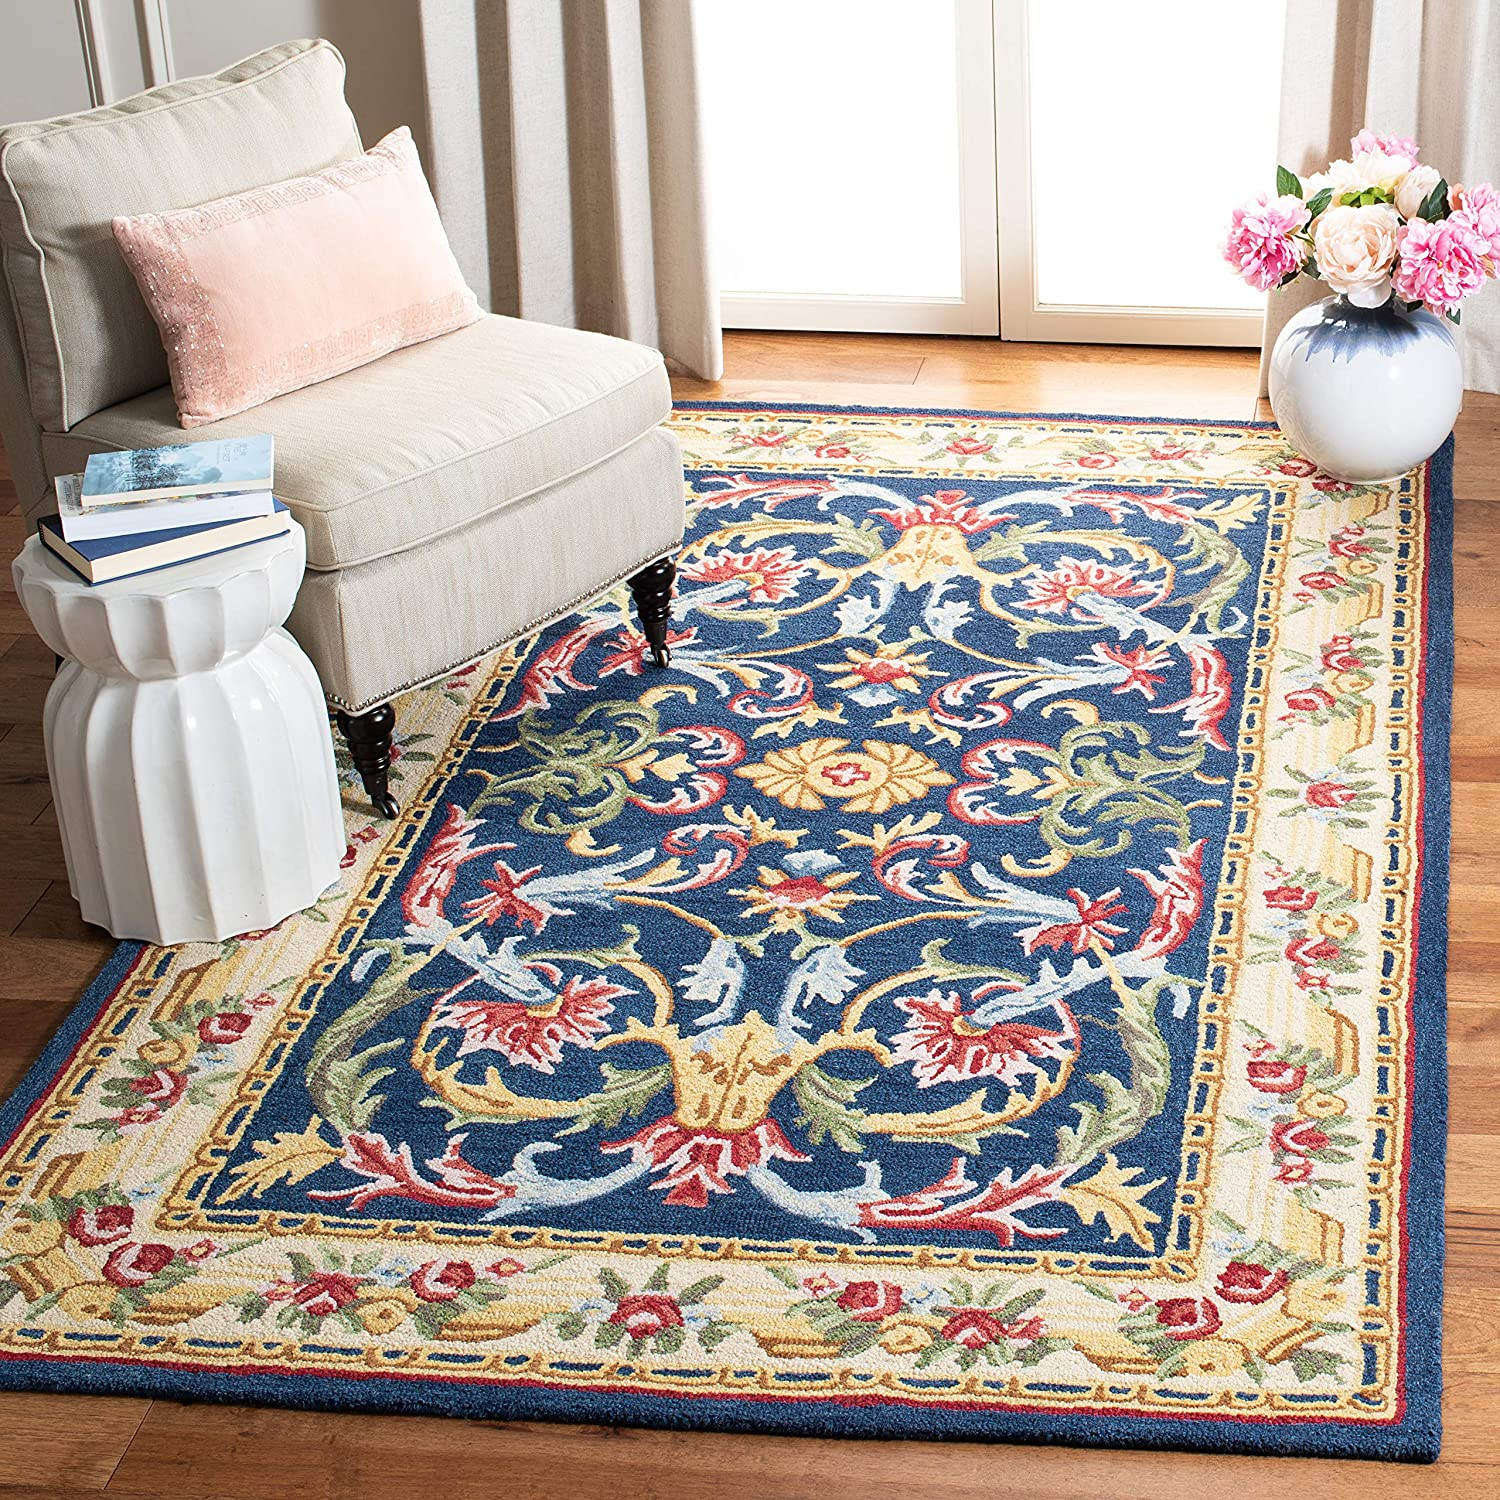 Safavieh Heritage Max 52% OFF Cheap SALE Start Collection HG657N Traditional Handmade Orienta